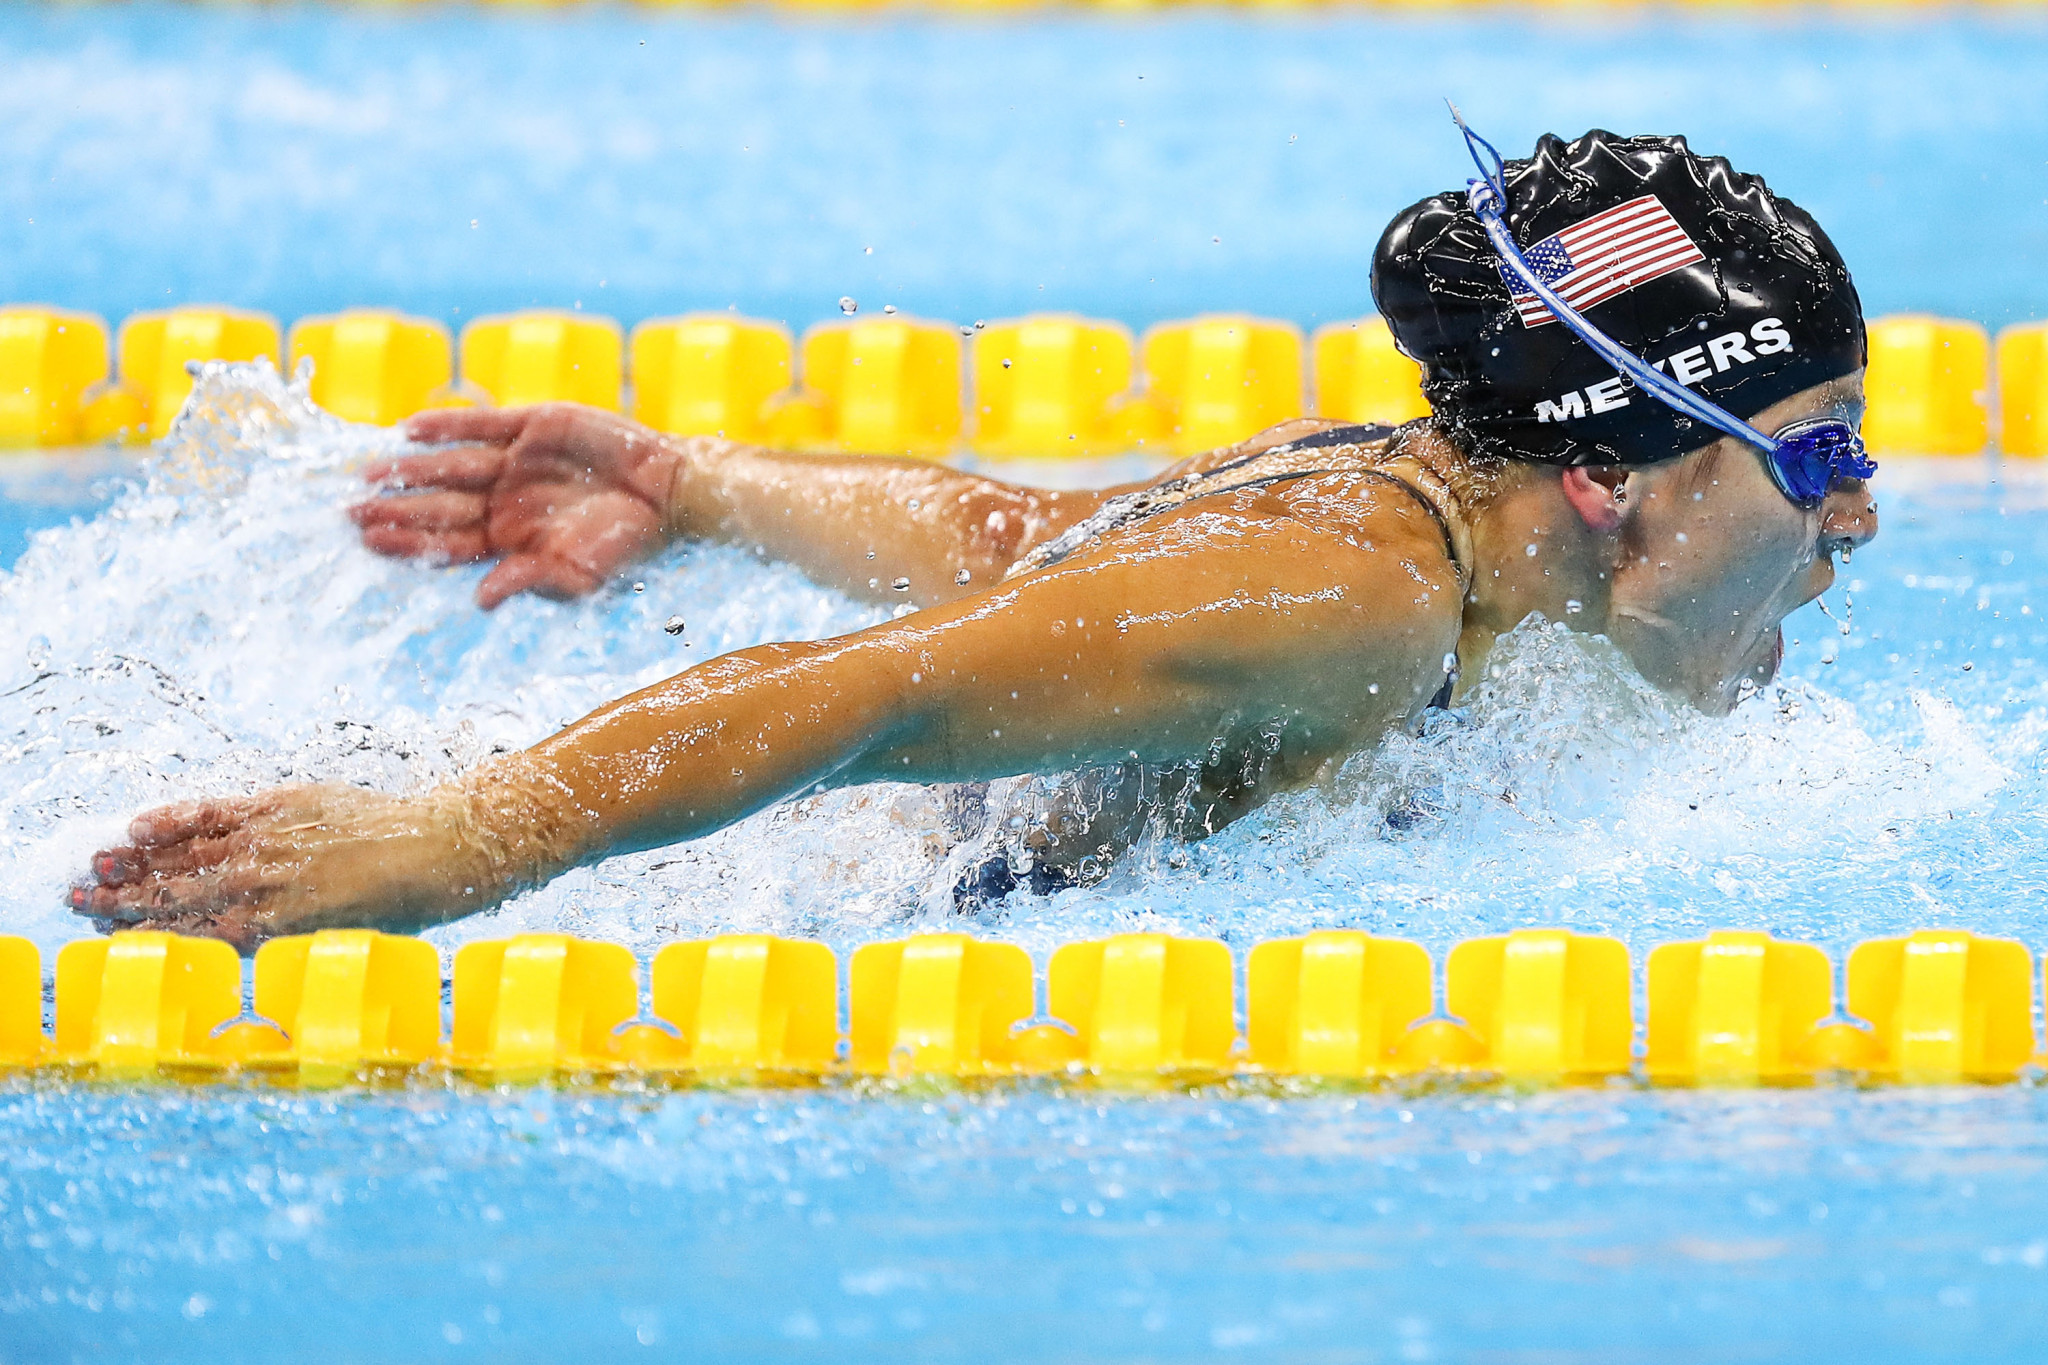 Six-time Paralympic medalist Rebecca Meyers has made the elite A subdivision in the 2019 US Paralympics Swimming National Team ©Getty Images